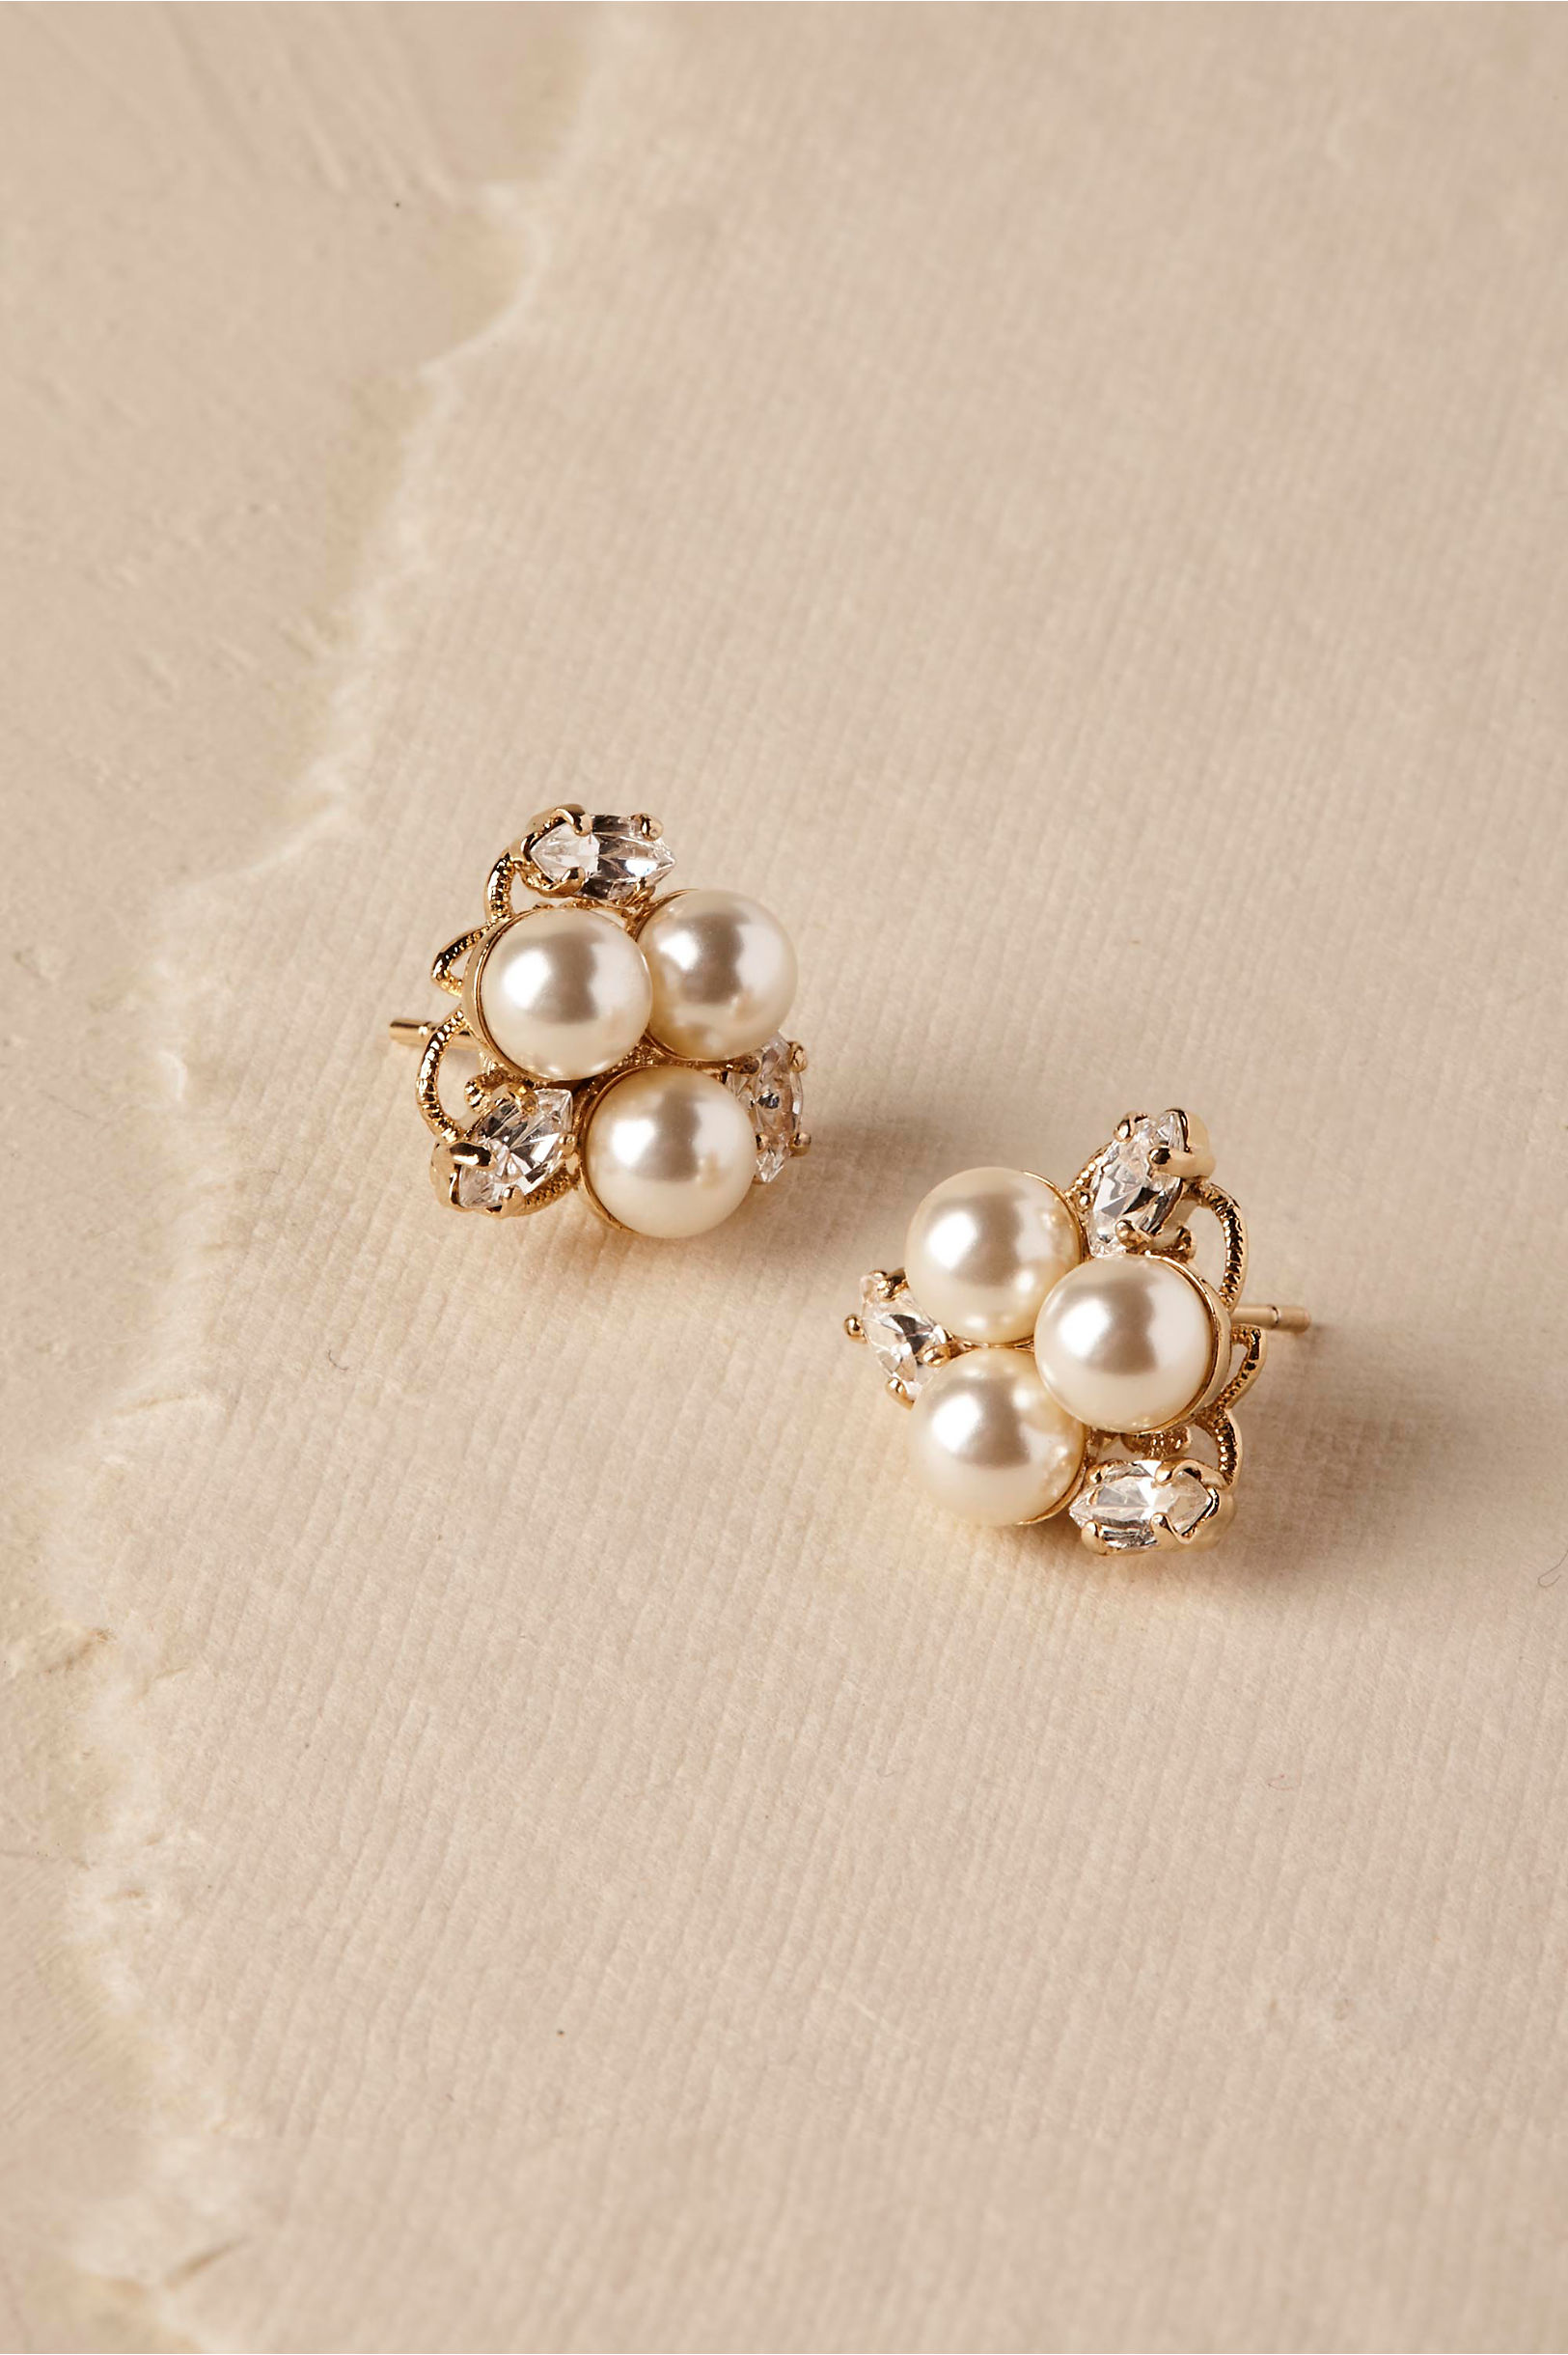 fire stud gg to opal on deals groupon latest up plating earrings in off gold crown goods rose